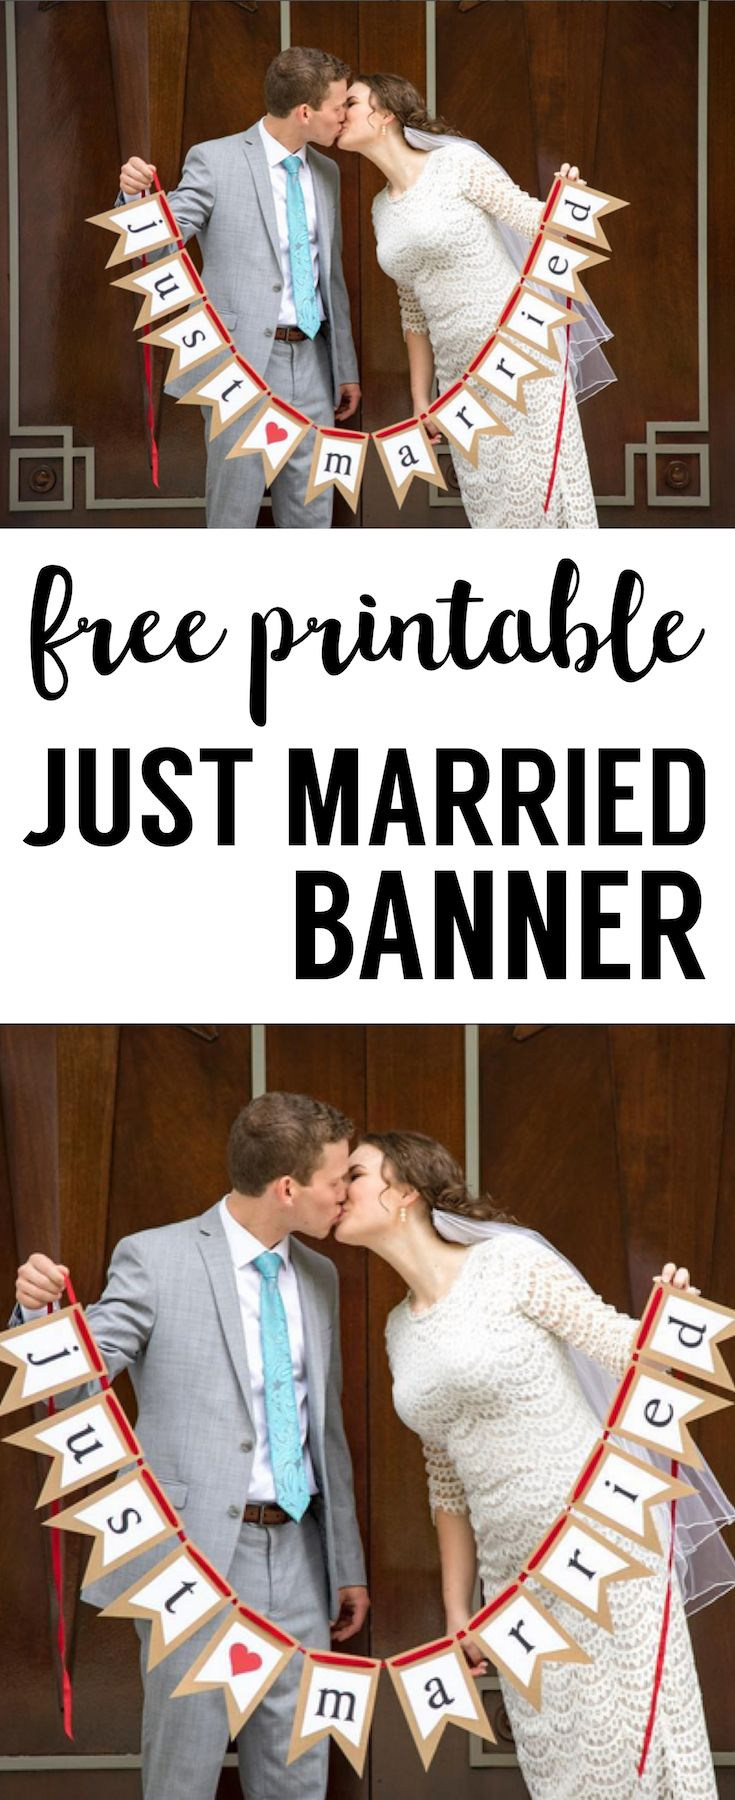 Free Printable Just Married Banner | Wedding Stuff | Casamiento - Just Married Free Printable